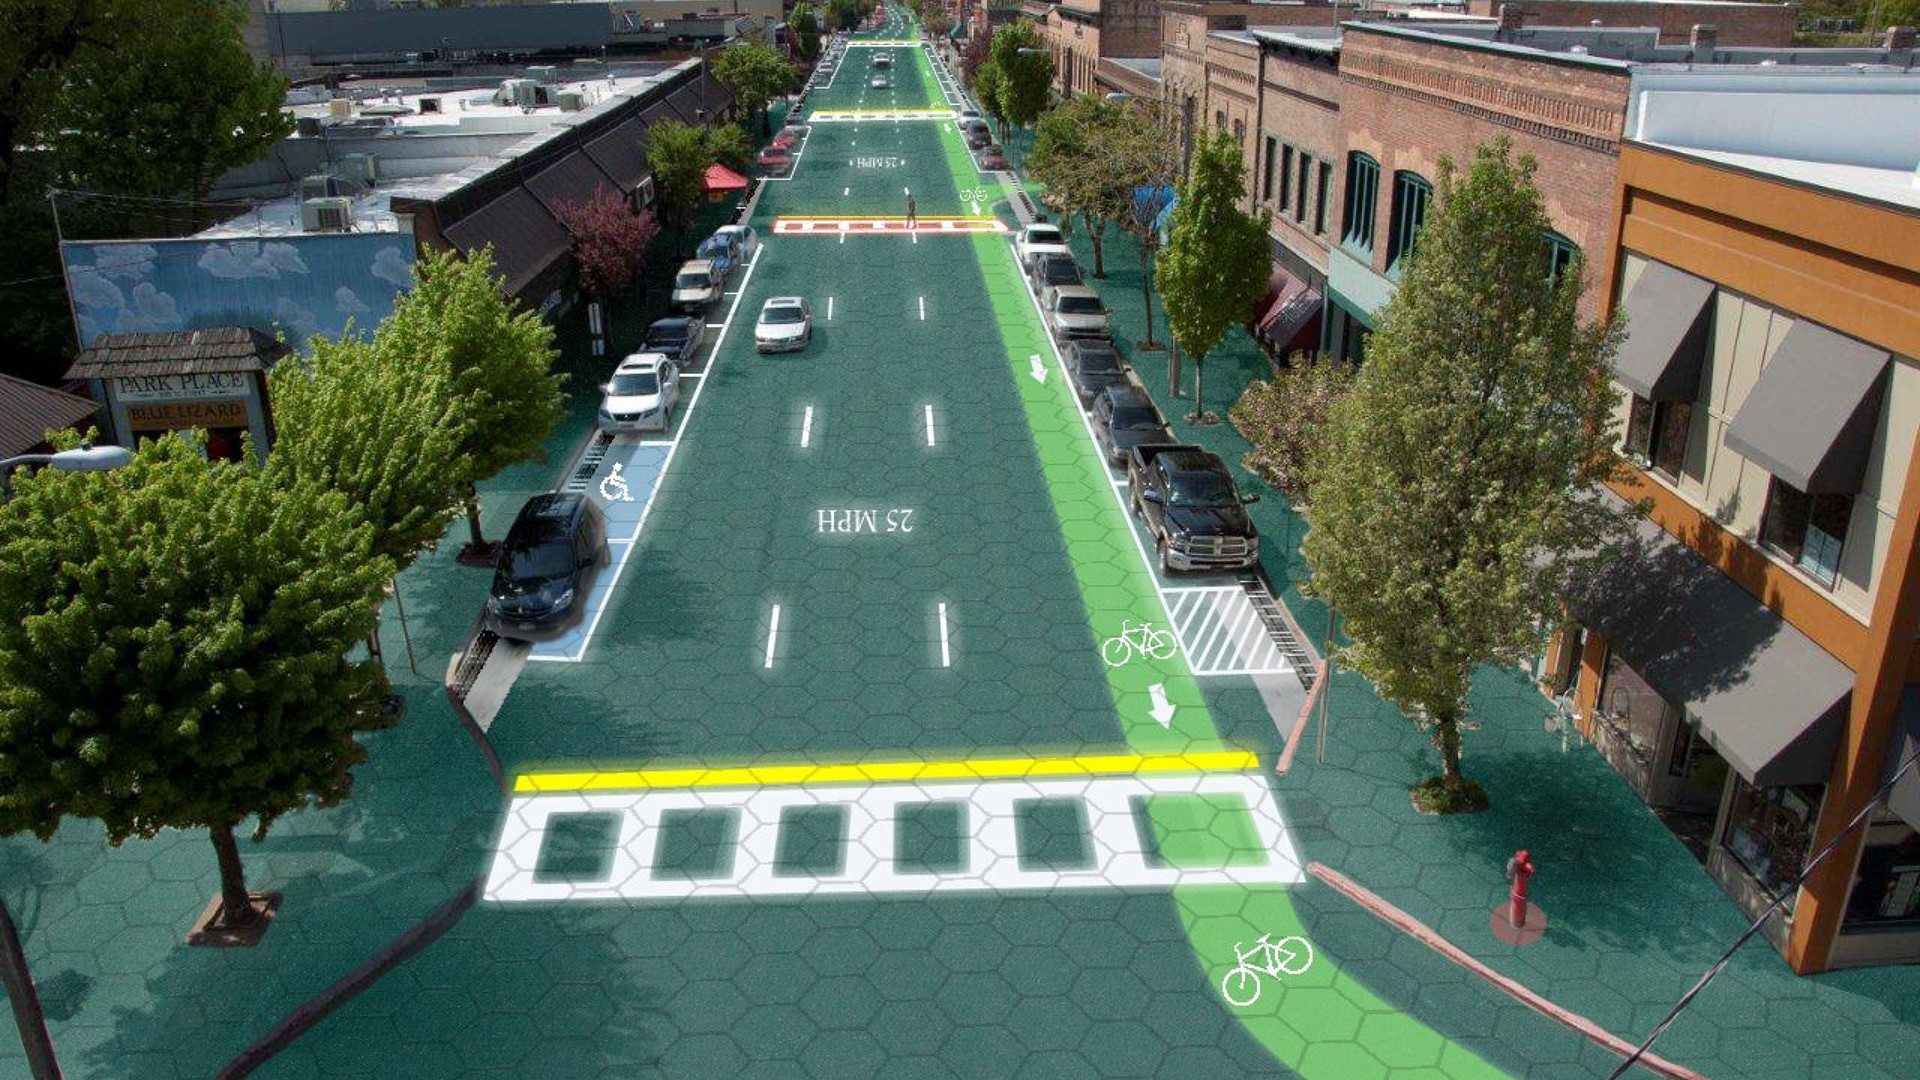 Missouri to test solar road panels this year